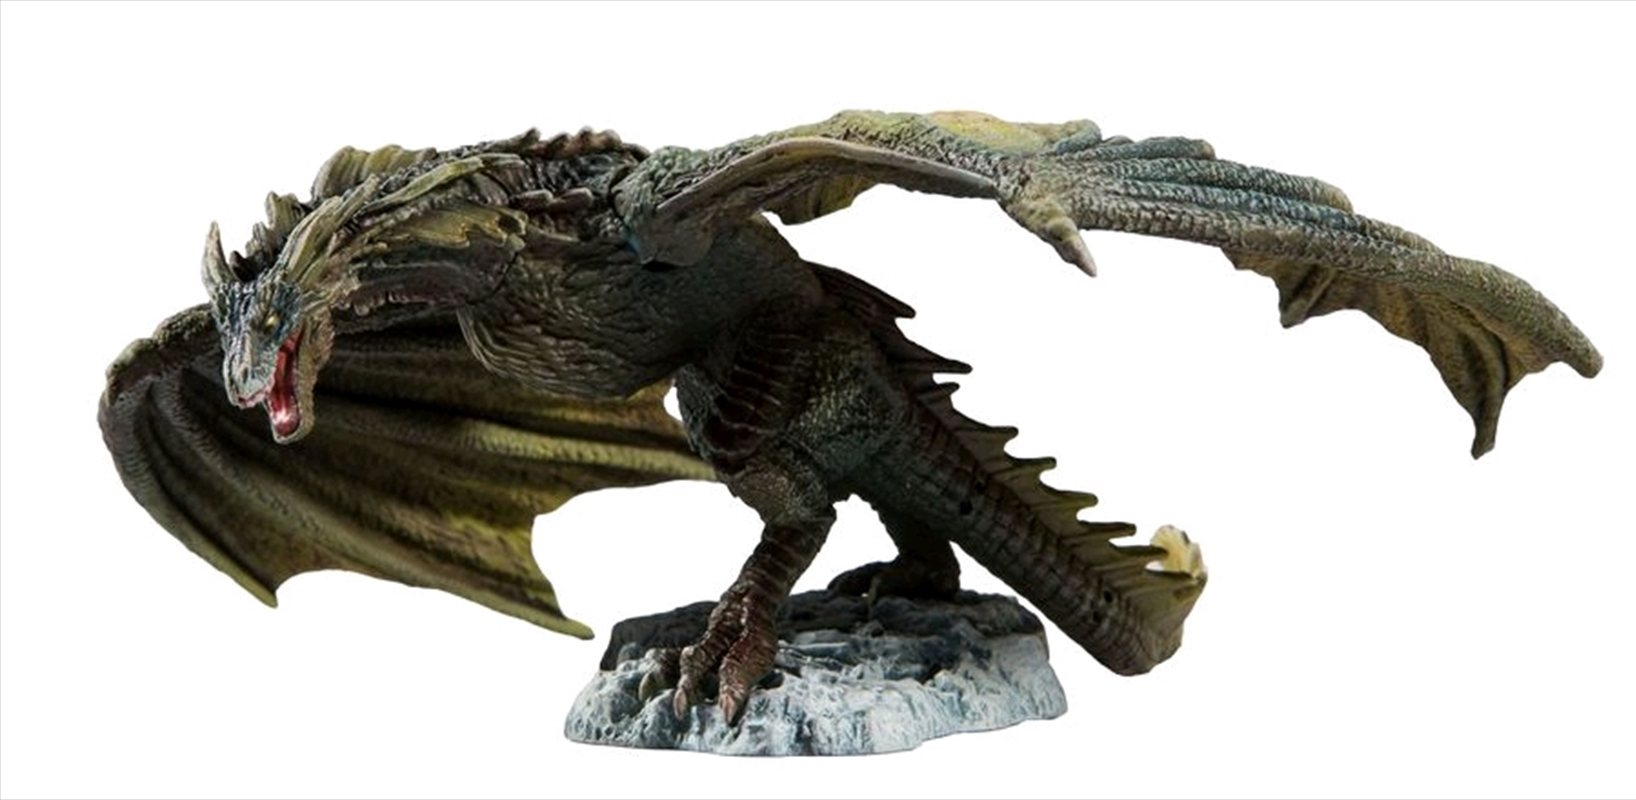 Game of Thrones - Rhaegal Deluxe Box Set | Merchandise